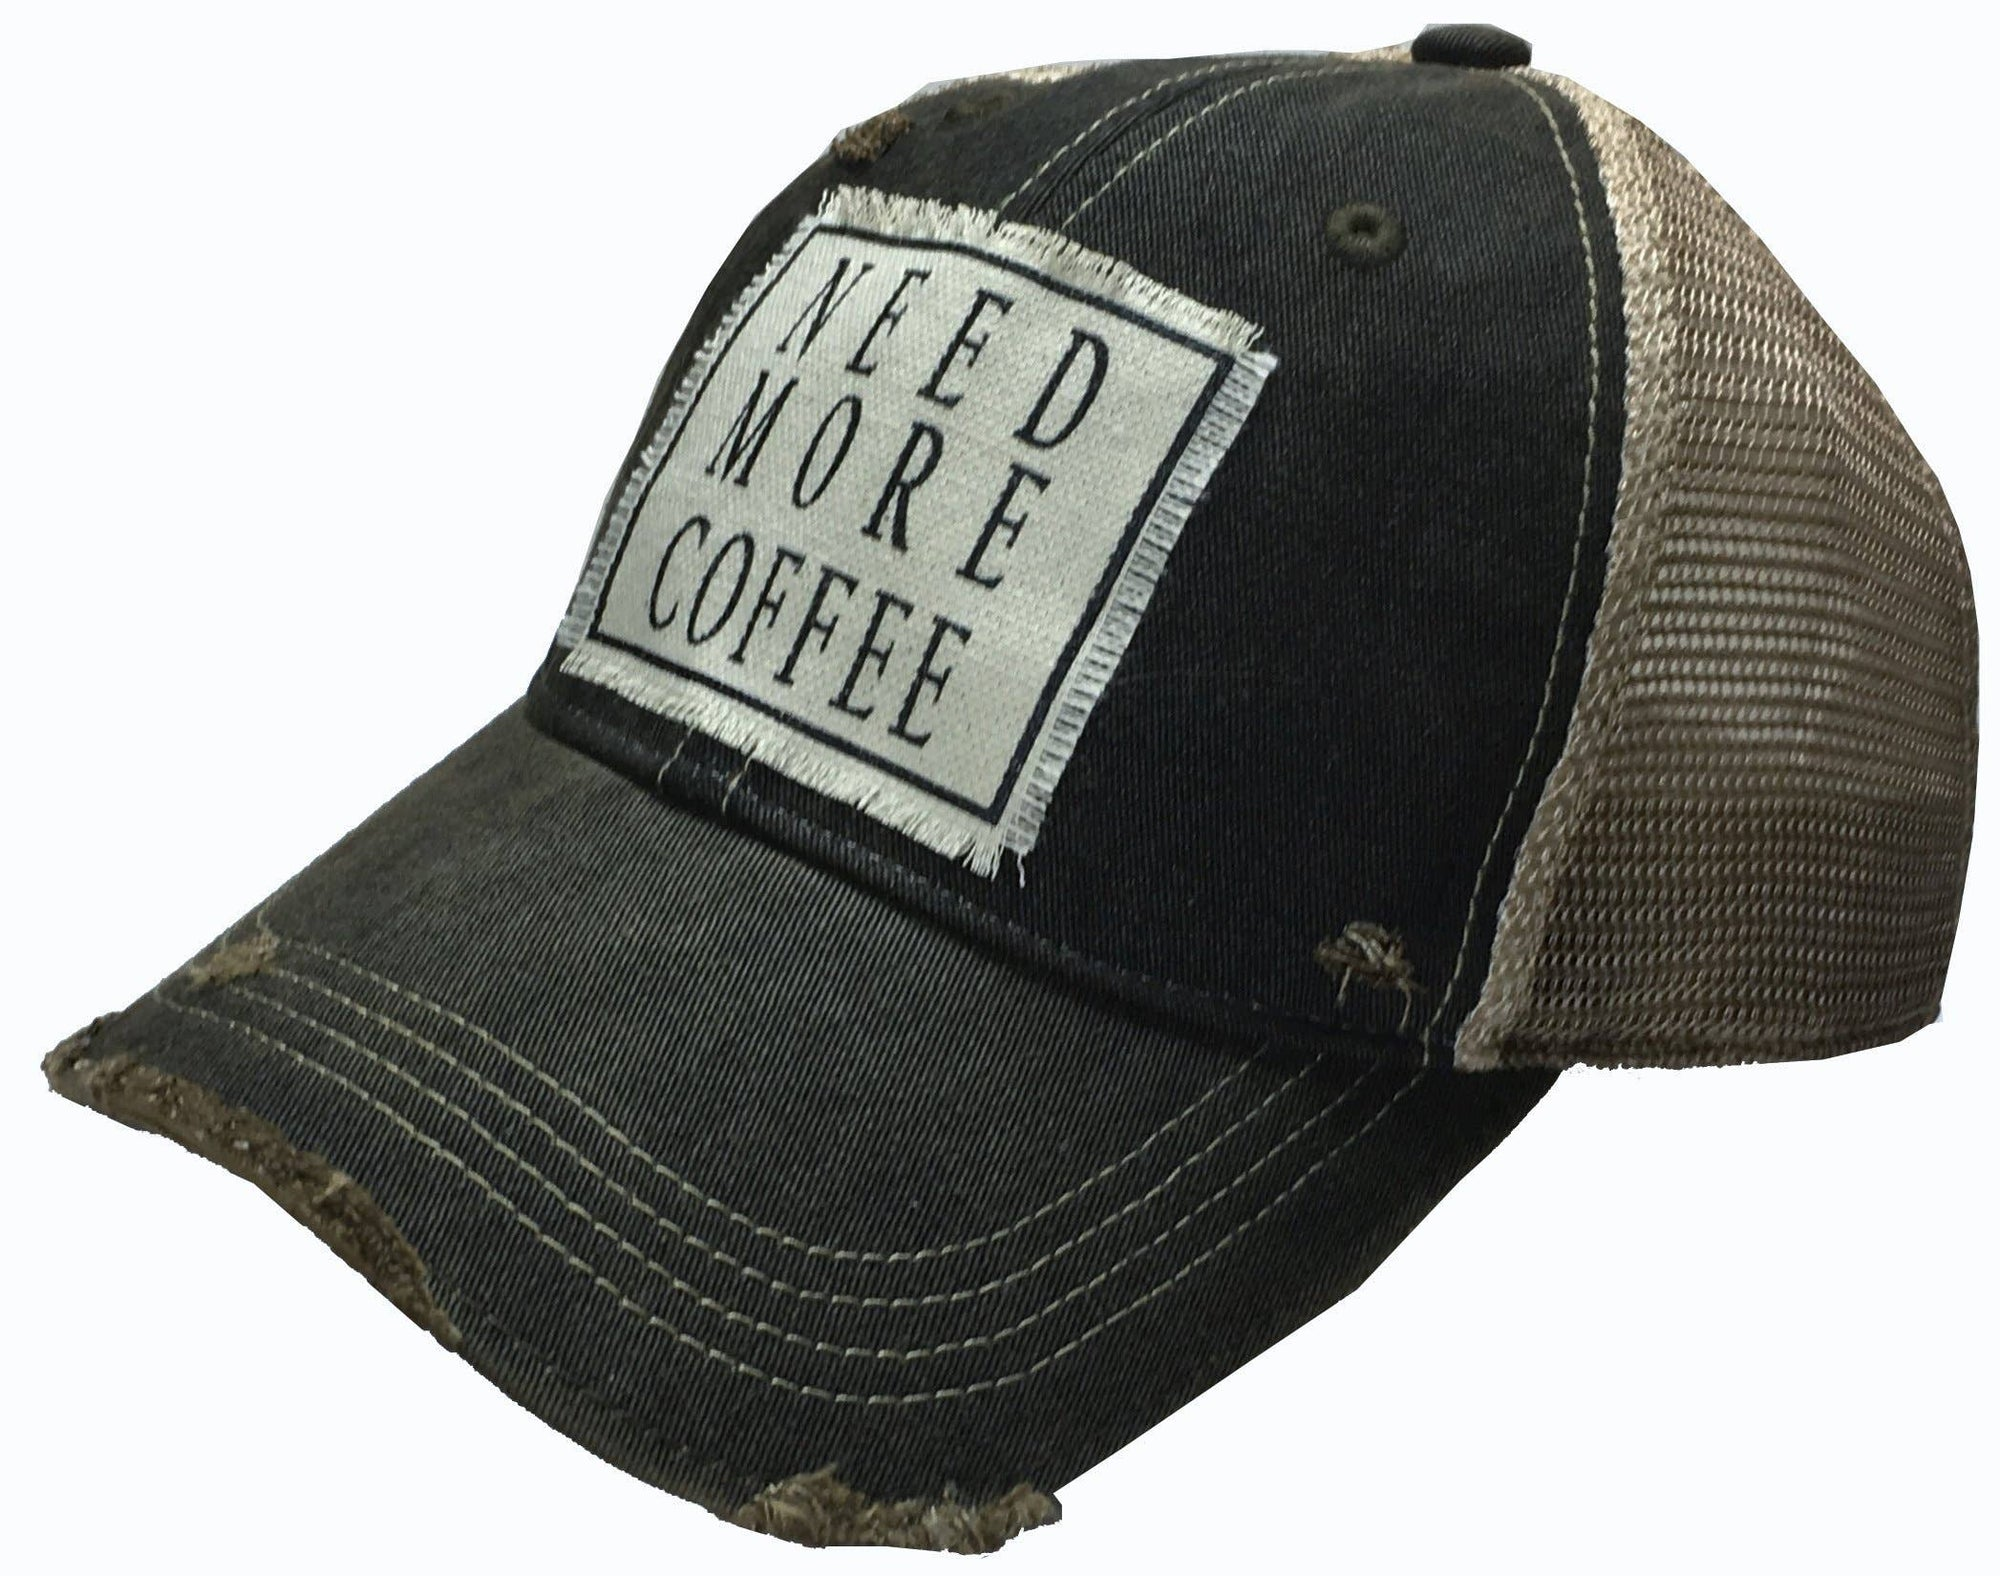 Need More Coffee Distressed Trucker Cap